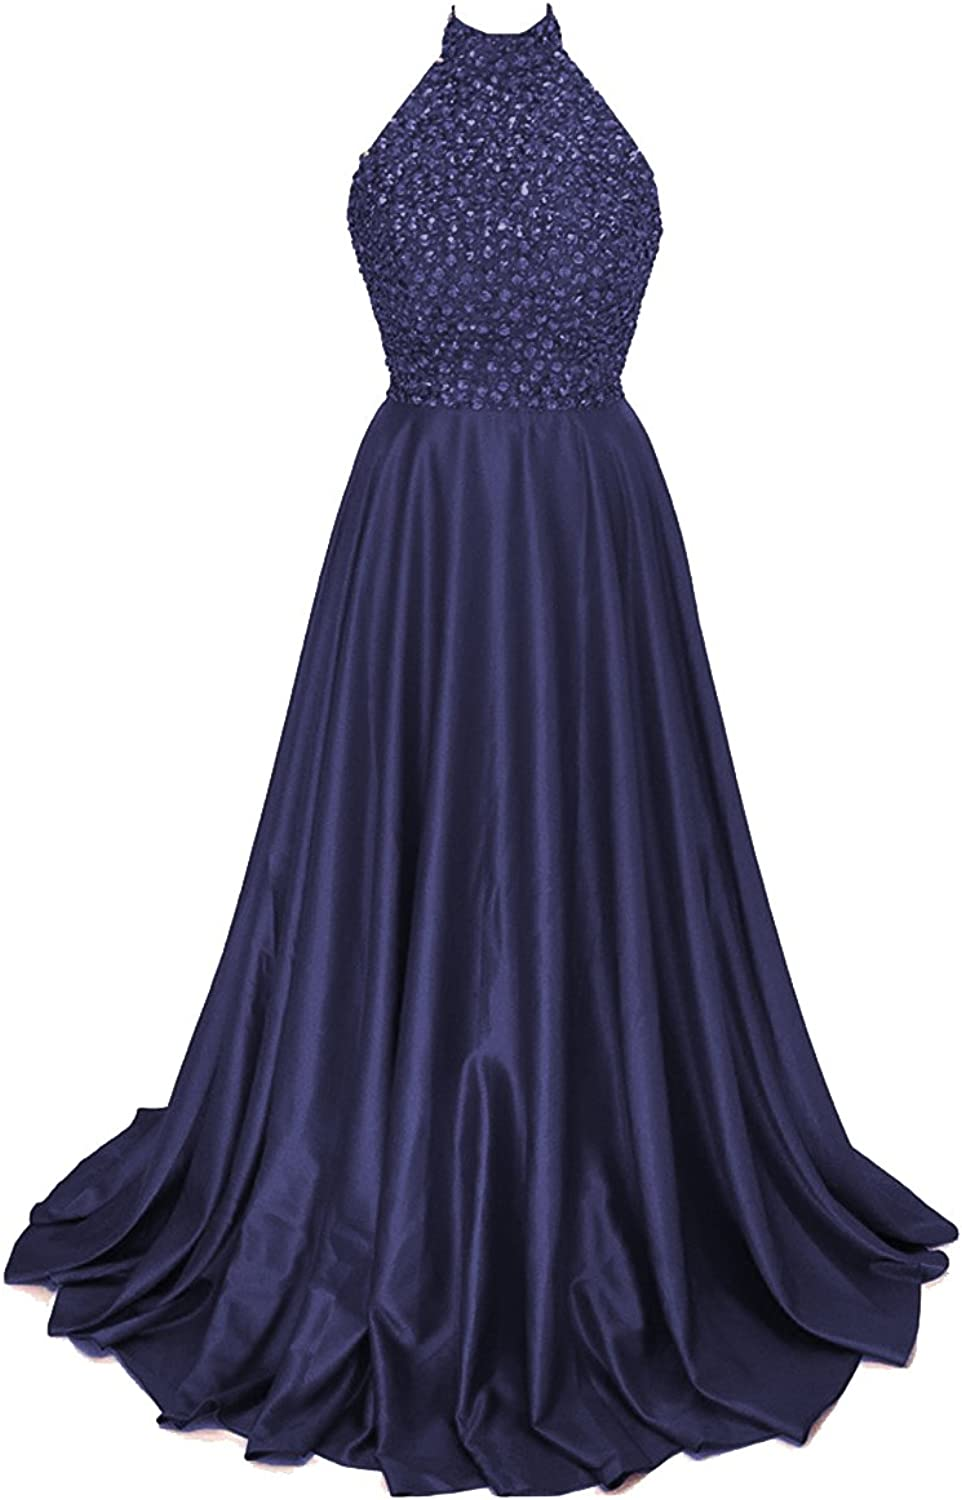 JQLD Women's Halter Satin Prom Homecoming Dresses Open Back Long Evening Gown Formal